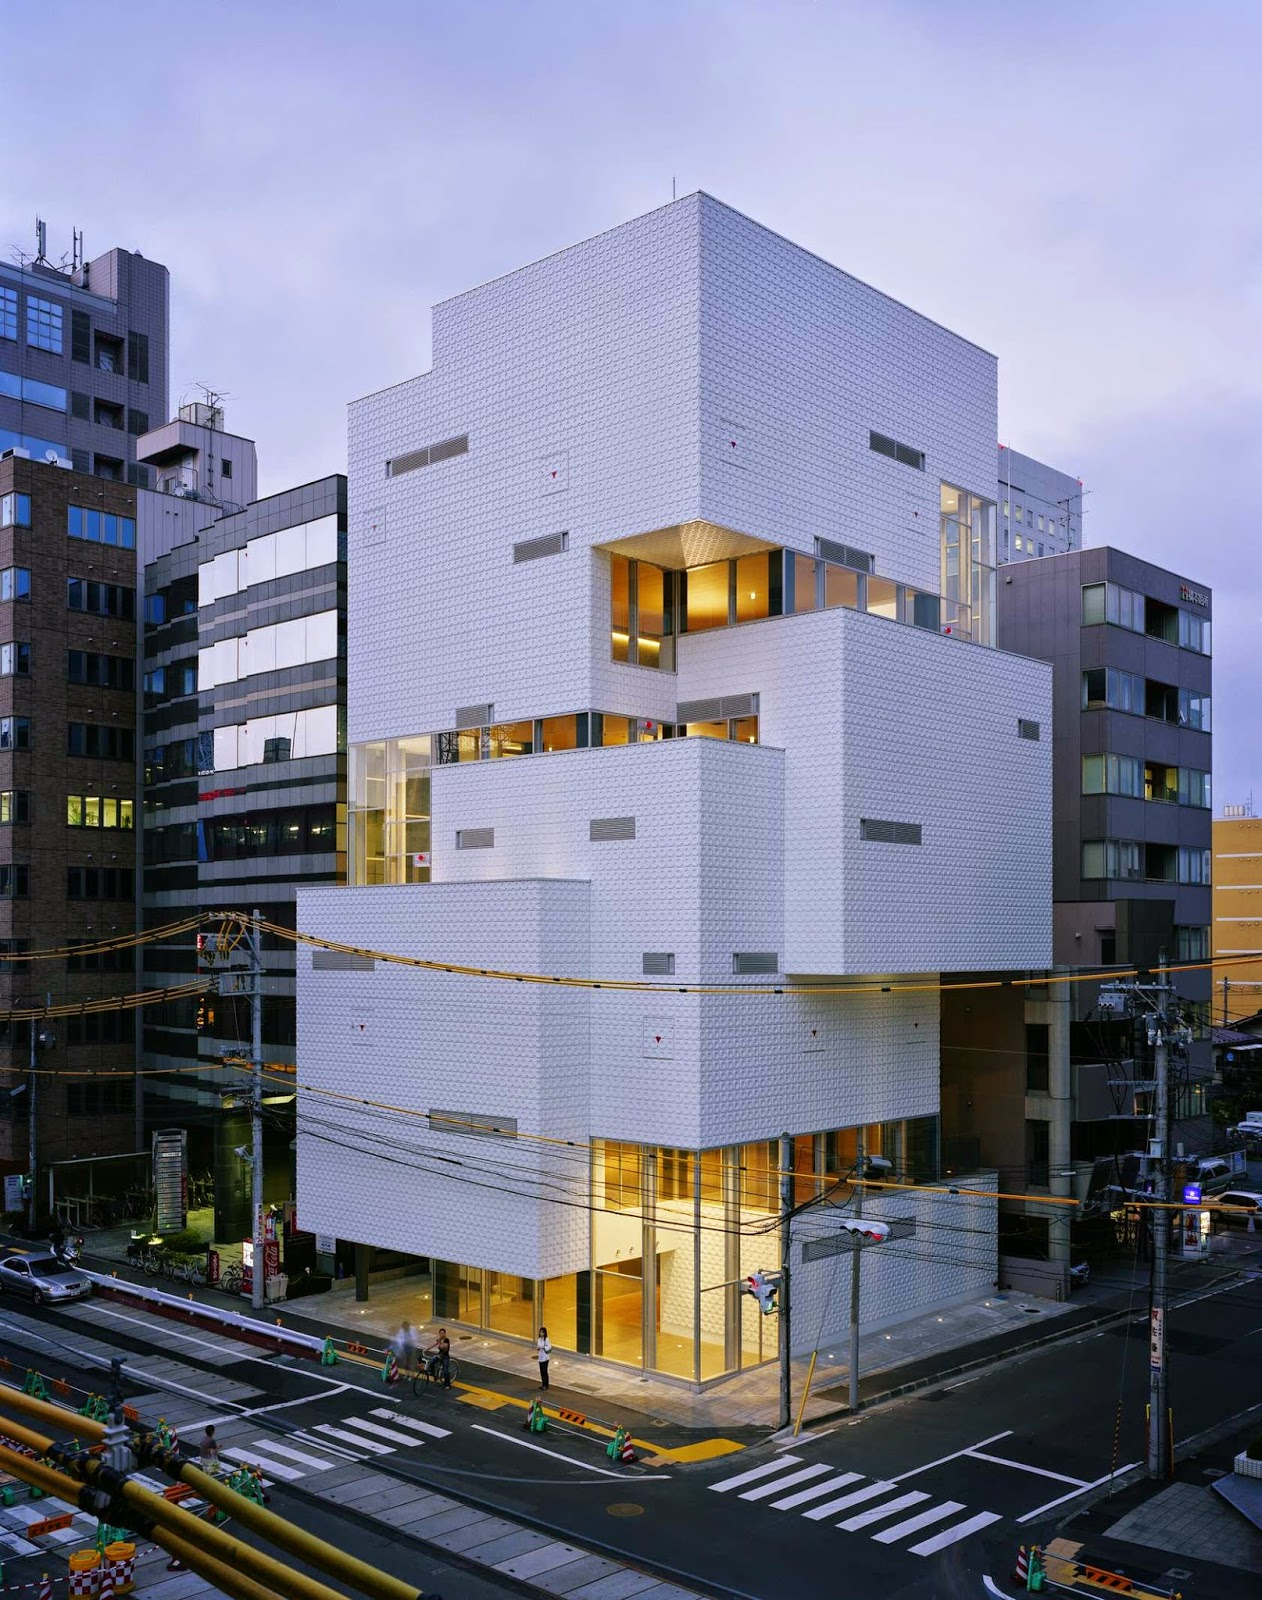 Ftown building architect atelier hitoshi abe japan for Architecture design company